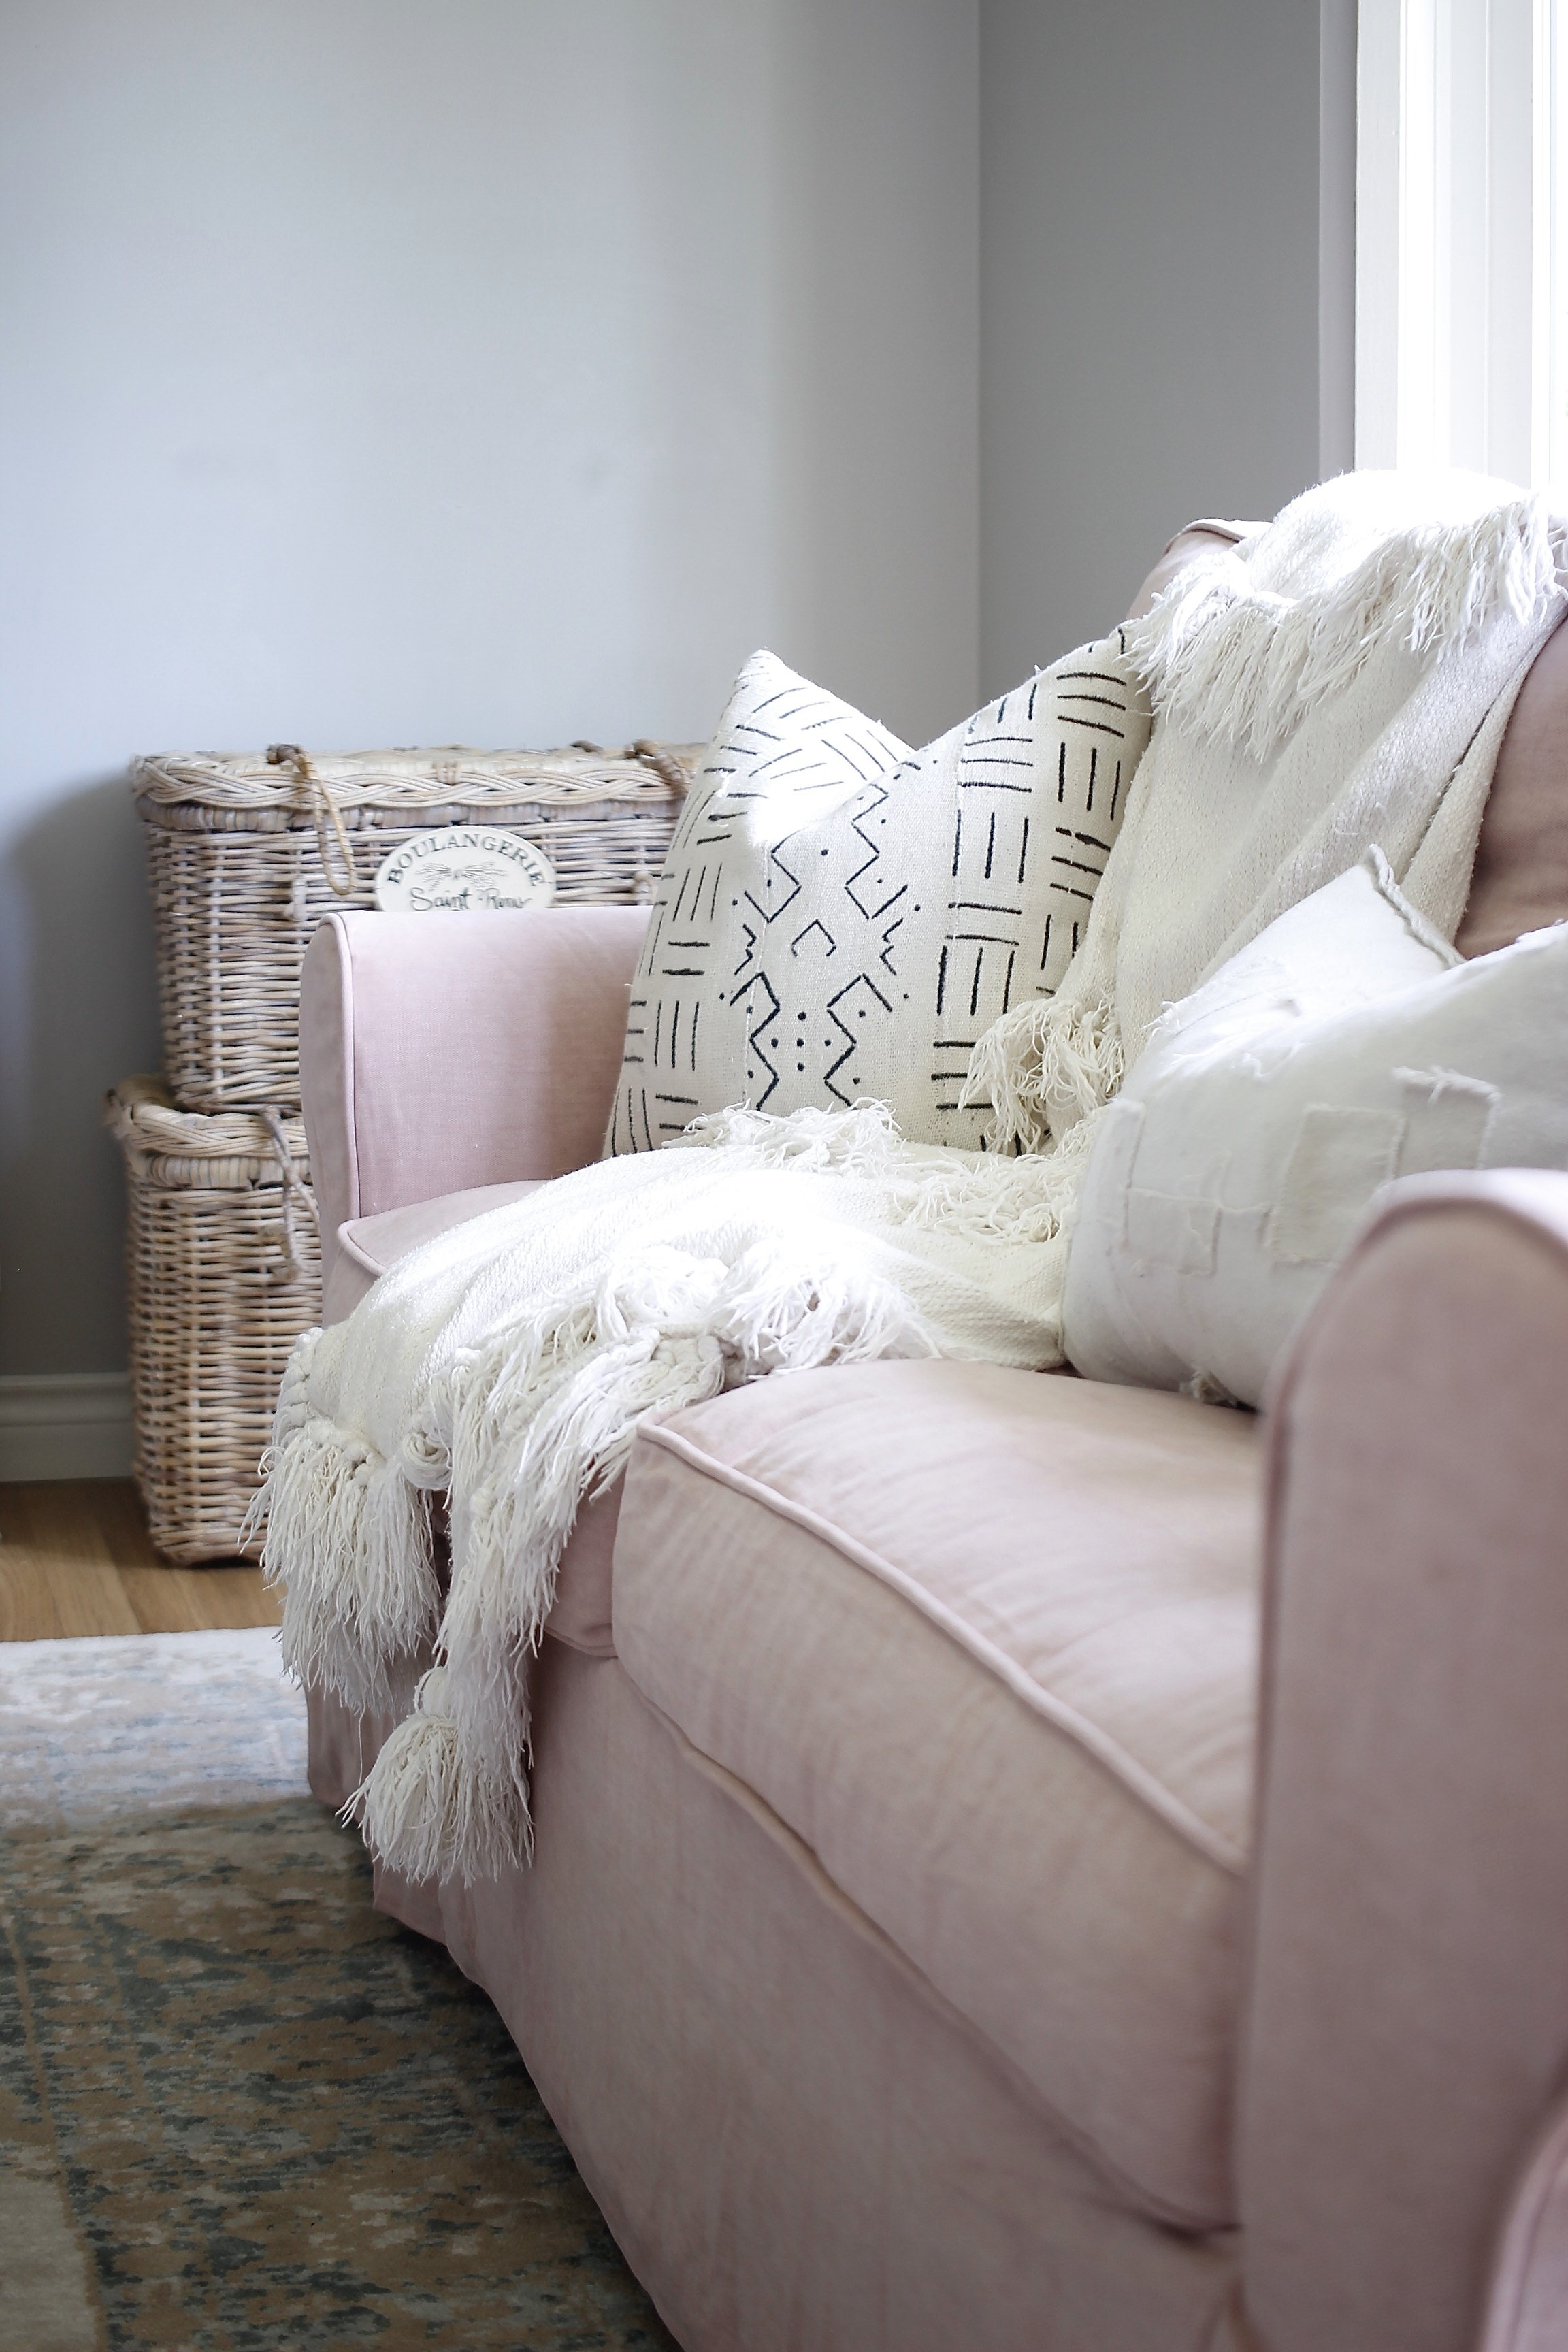 I Did Something I Said I Would Never Do, I Bought Pink Sofa Covers From Comfort Works. These Covers are Handmade and Fit my Ektorp Sofas Perfectly. Click To Read My Full Review